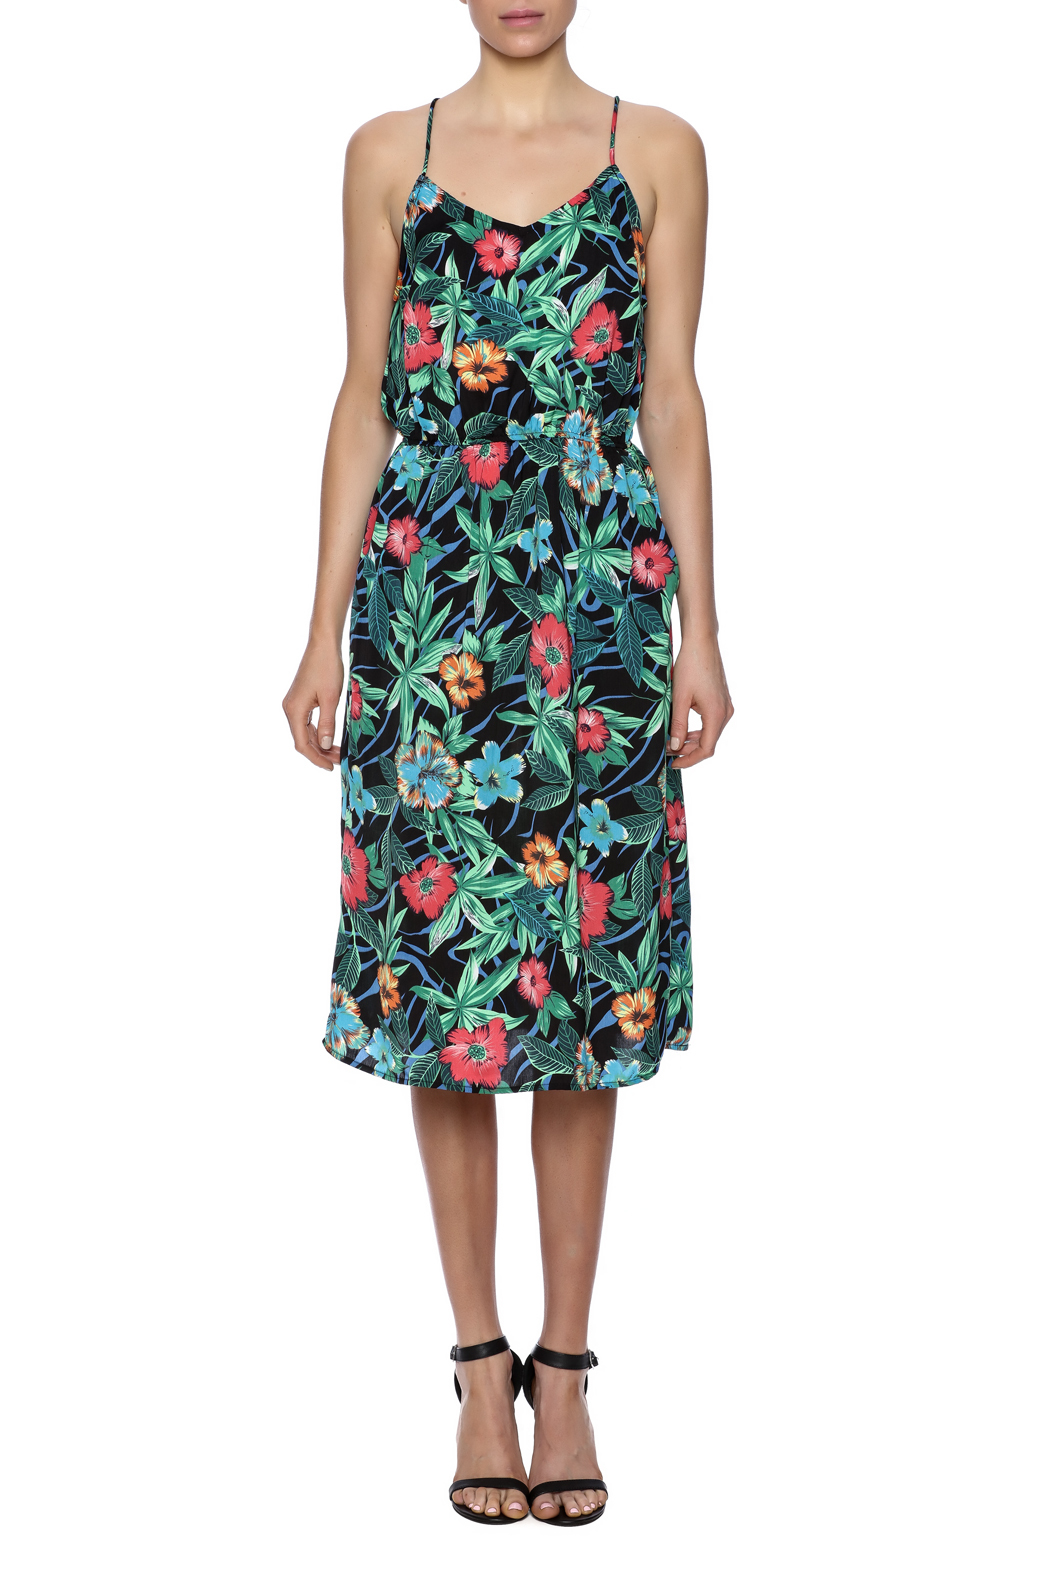 Molly Bracken Hawaiian Print Dress - Front Cropped Image